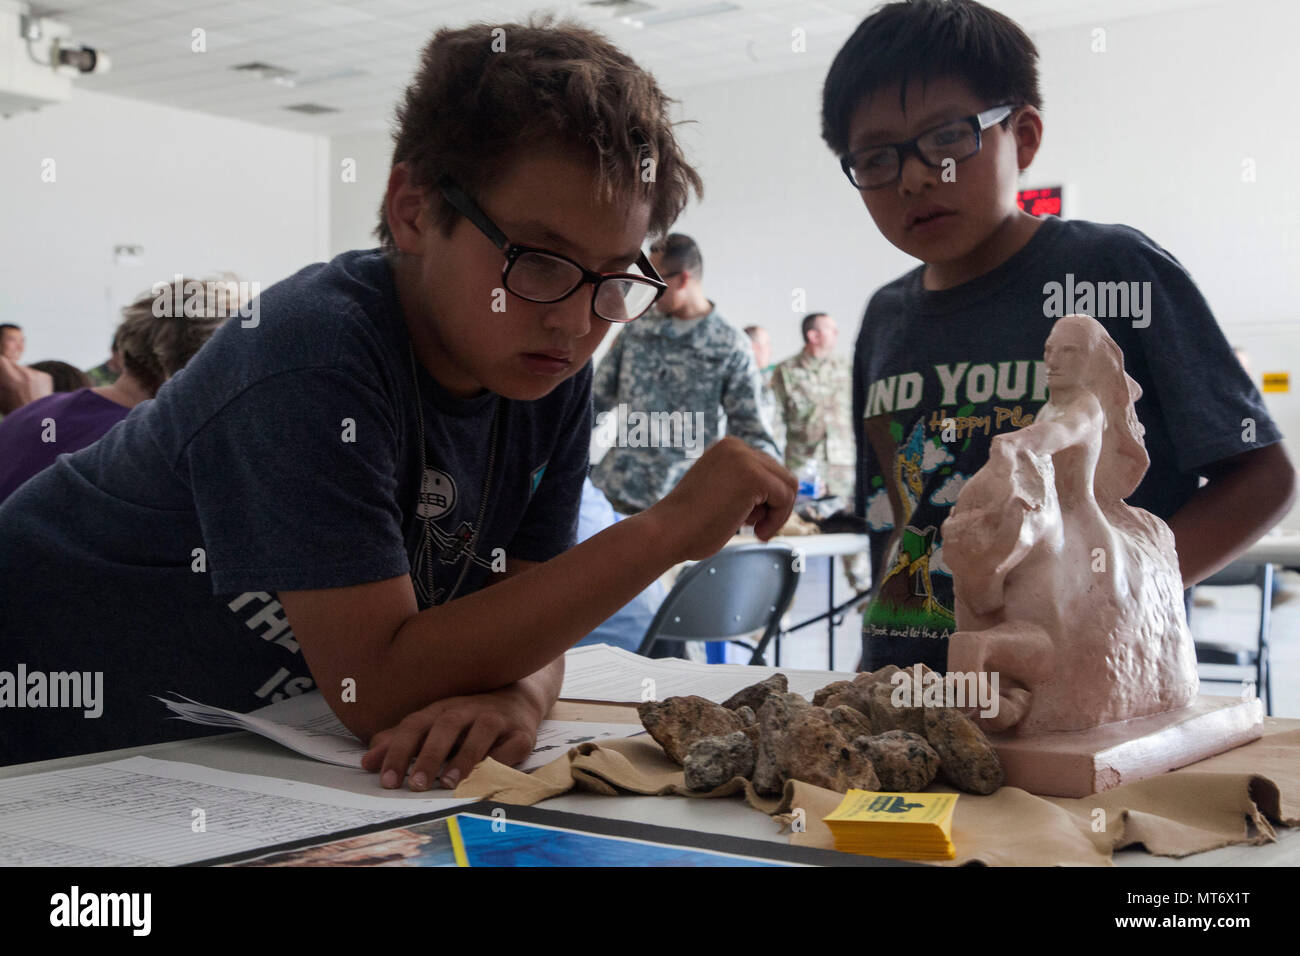 Two children look at a Crazy Horse exhibit as the South Dakota National Guard concludes its annual Golden Coyote training exercise with a Native American Cultural Day in Rapid City, S.D., June 15, 2017. The event gave service members from 14 states and two foreign nations attending the two-week exercise the opportunity to see a variety of exhibits and demonstrations on Native American culture. - Stock Image